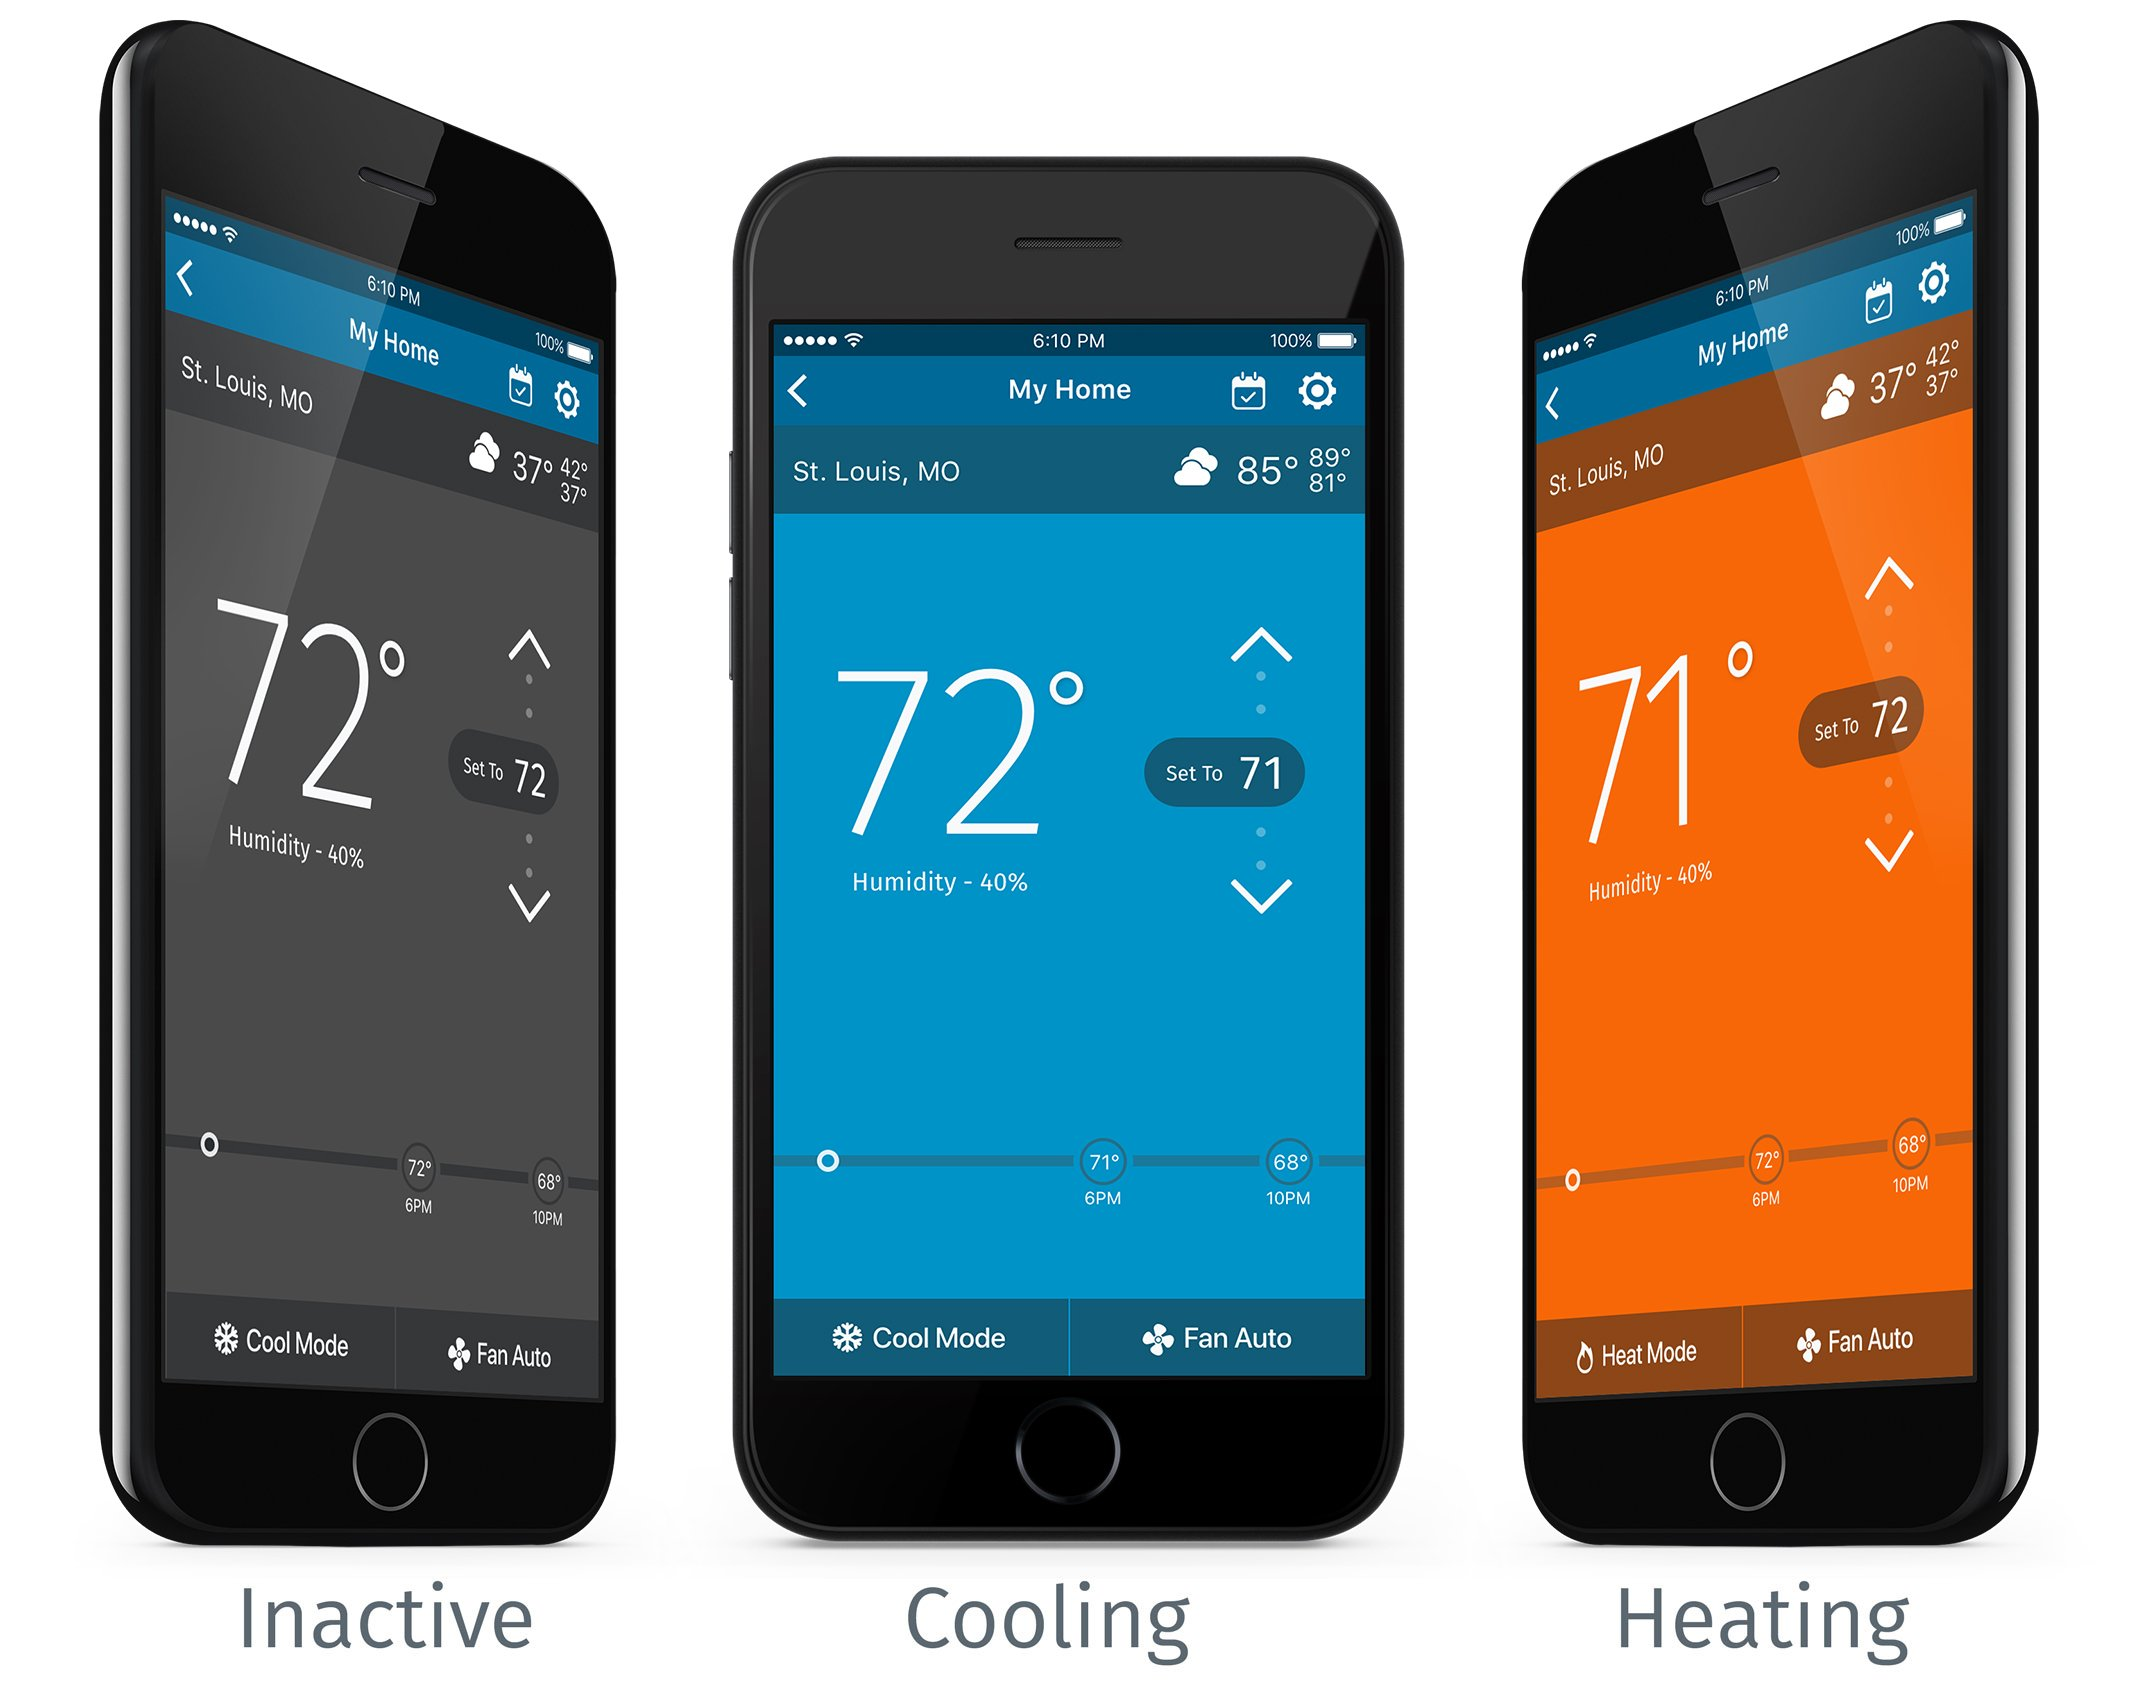 Emerson Sensi Touch Wi-Fi Thermostat with Touchscreen Color Display for Smart Home, ST75, Works with Alexa by Emerson Thermostats (Image #3)